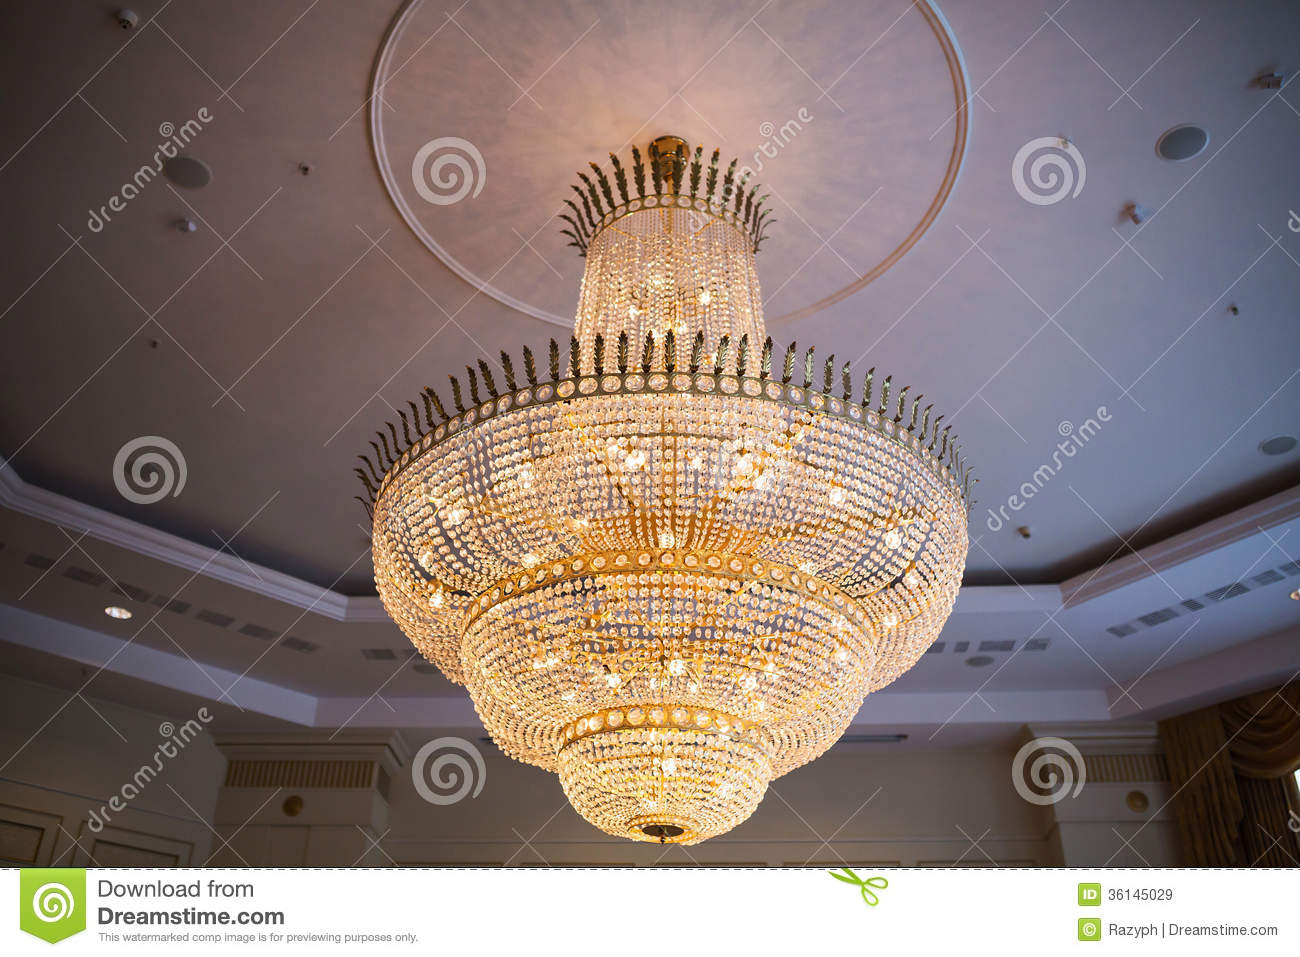 ... chandelier with crystals hanging from the ceiling of a ballroom